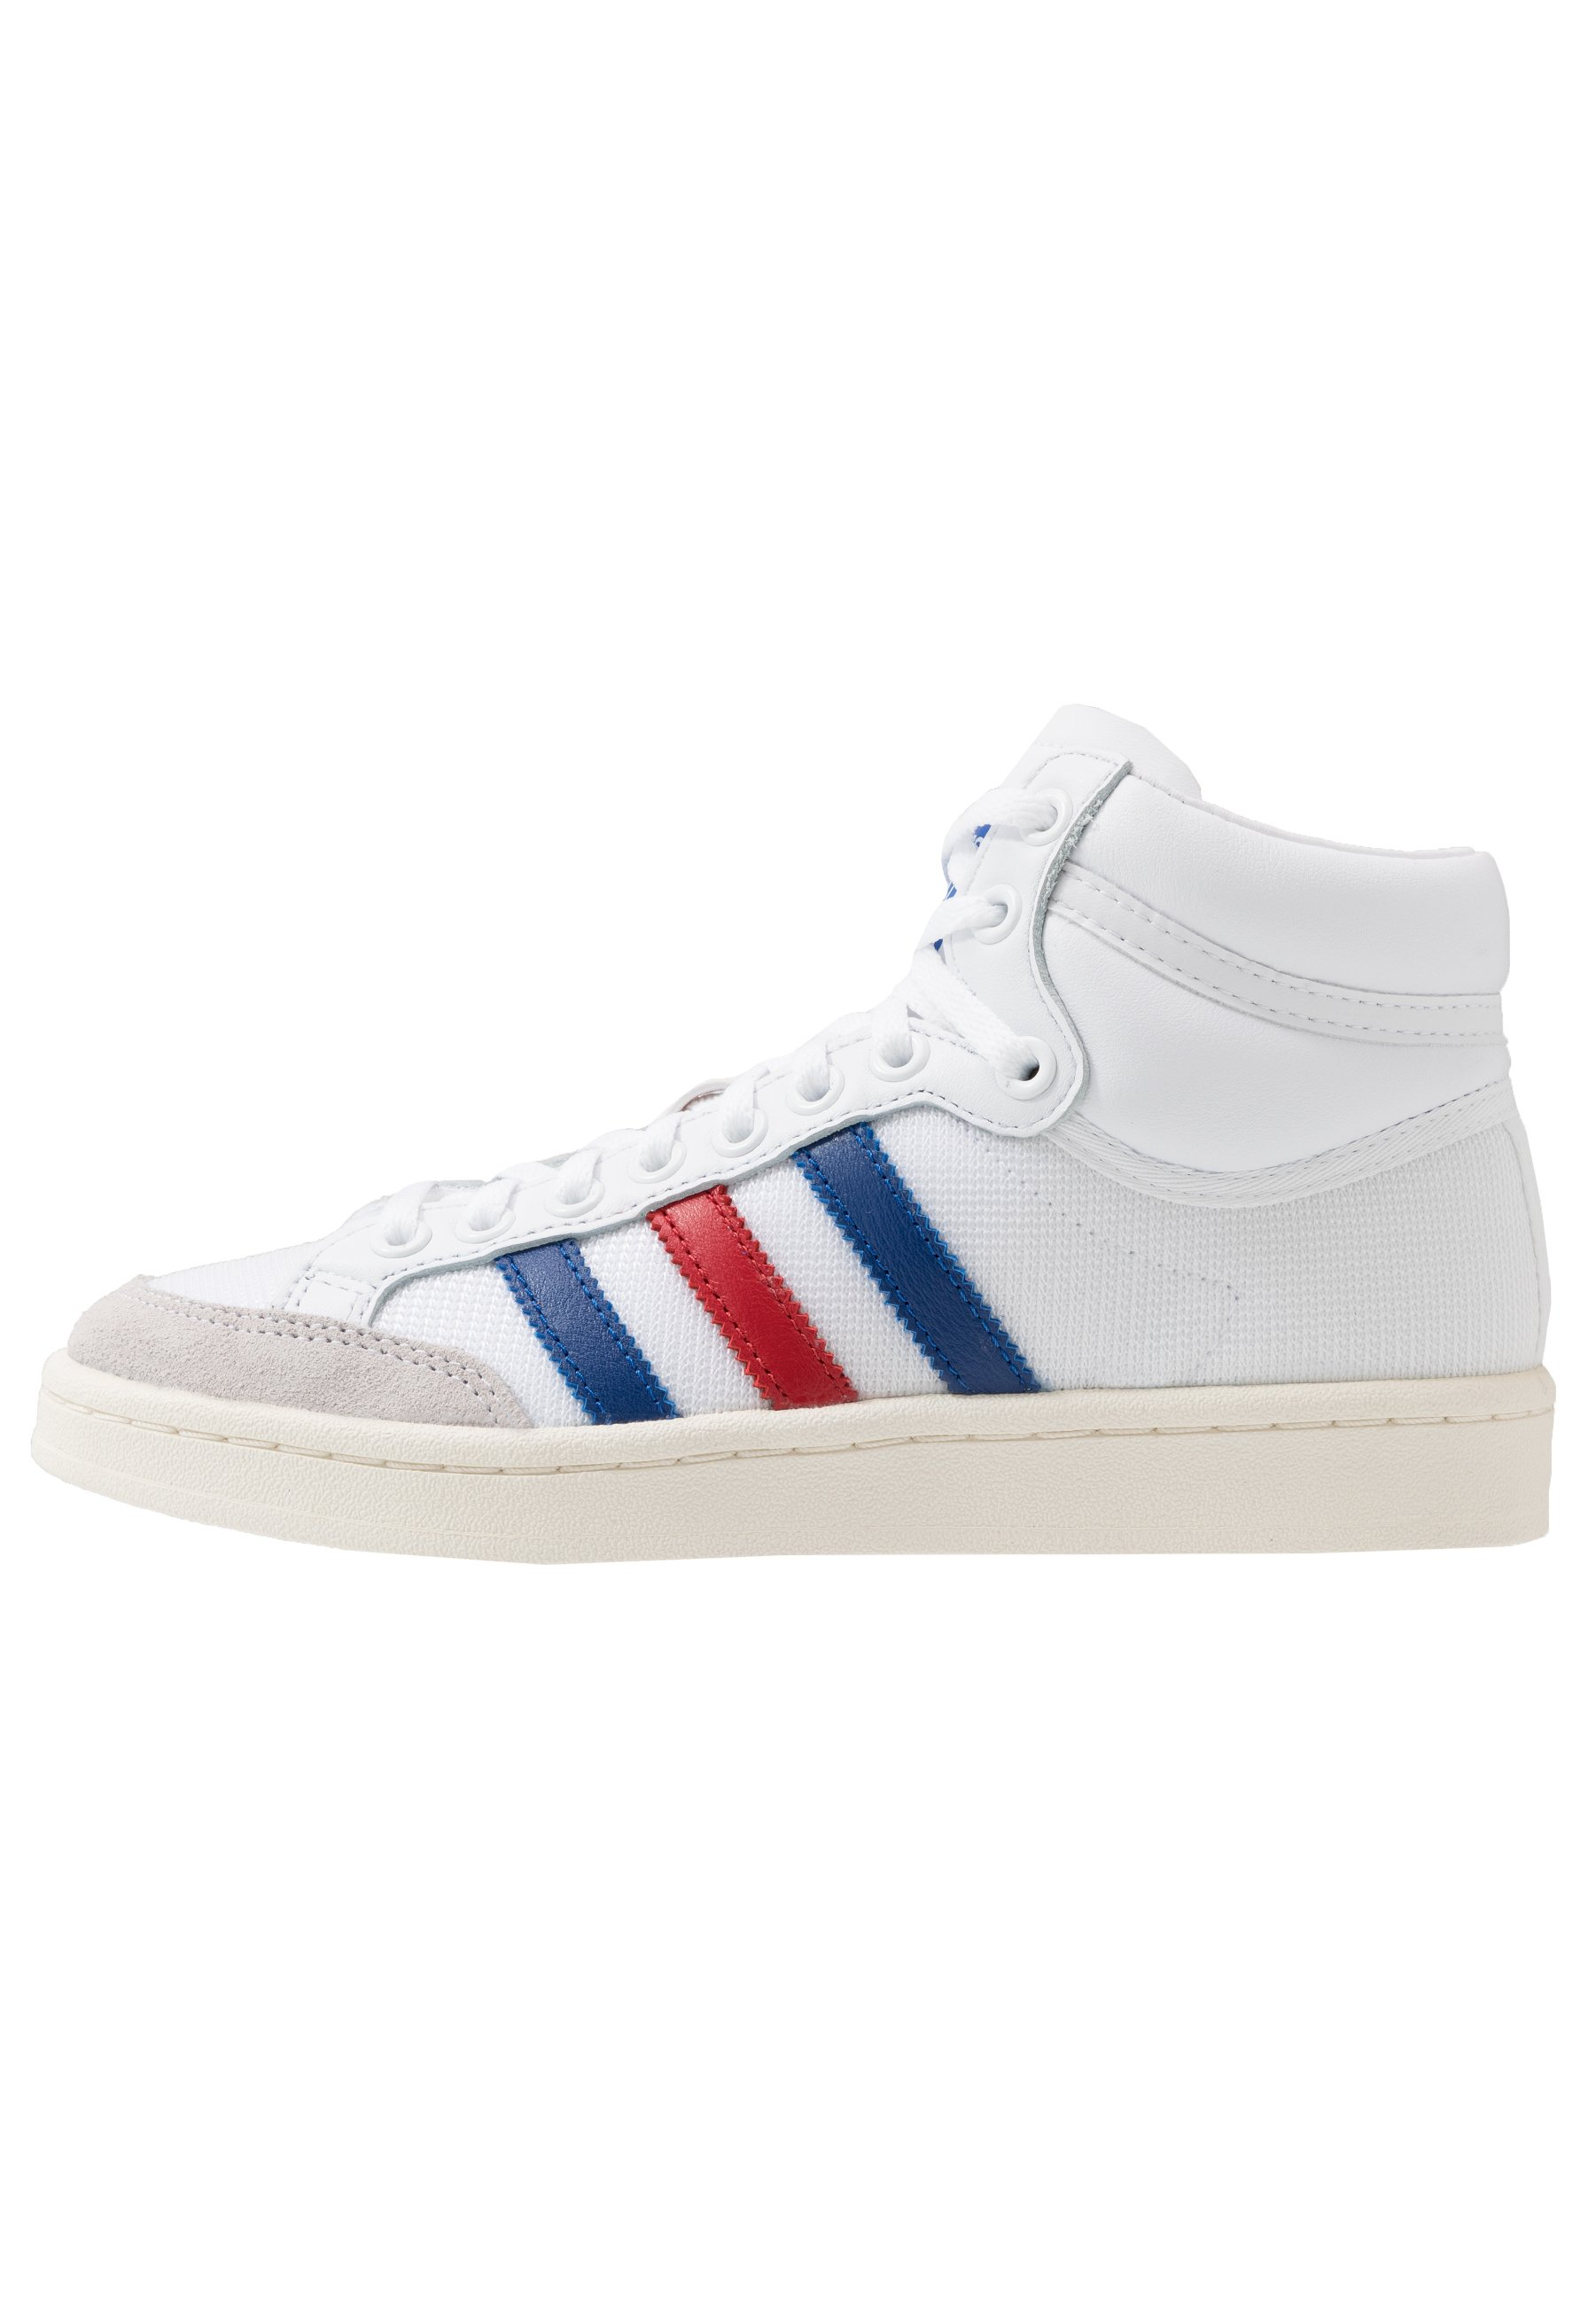 Adidas Originals Americana - Høye Joggesko Footwear White/collegiate Royal/scarlet